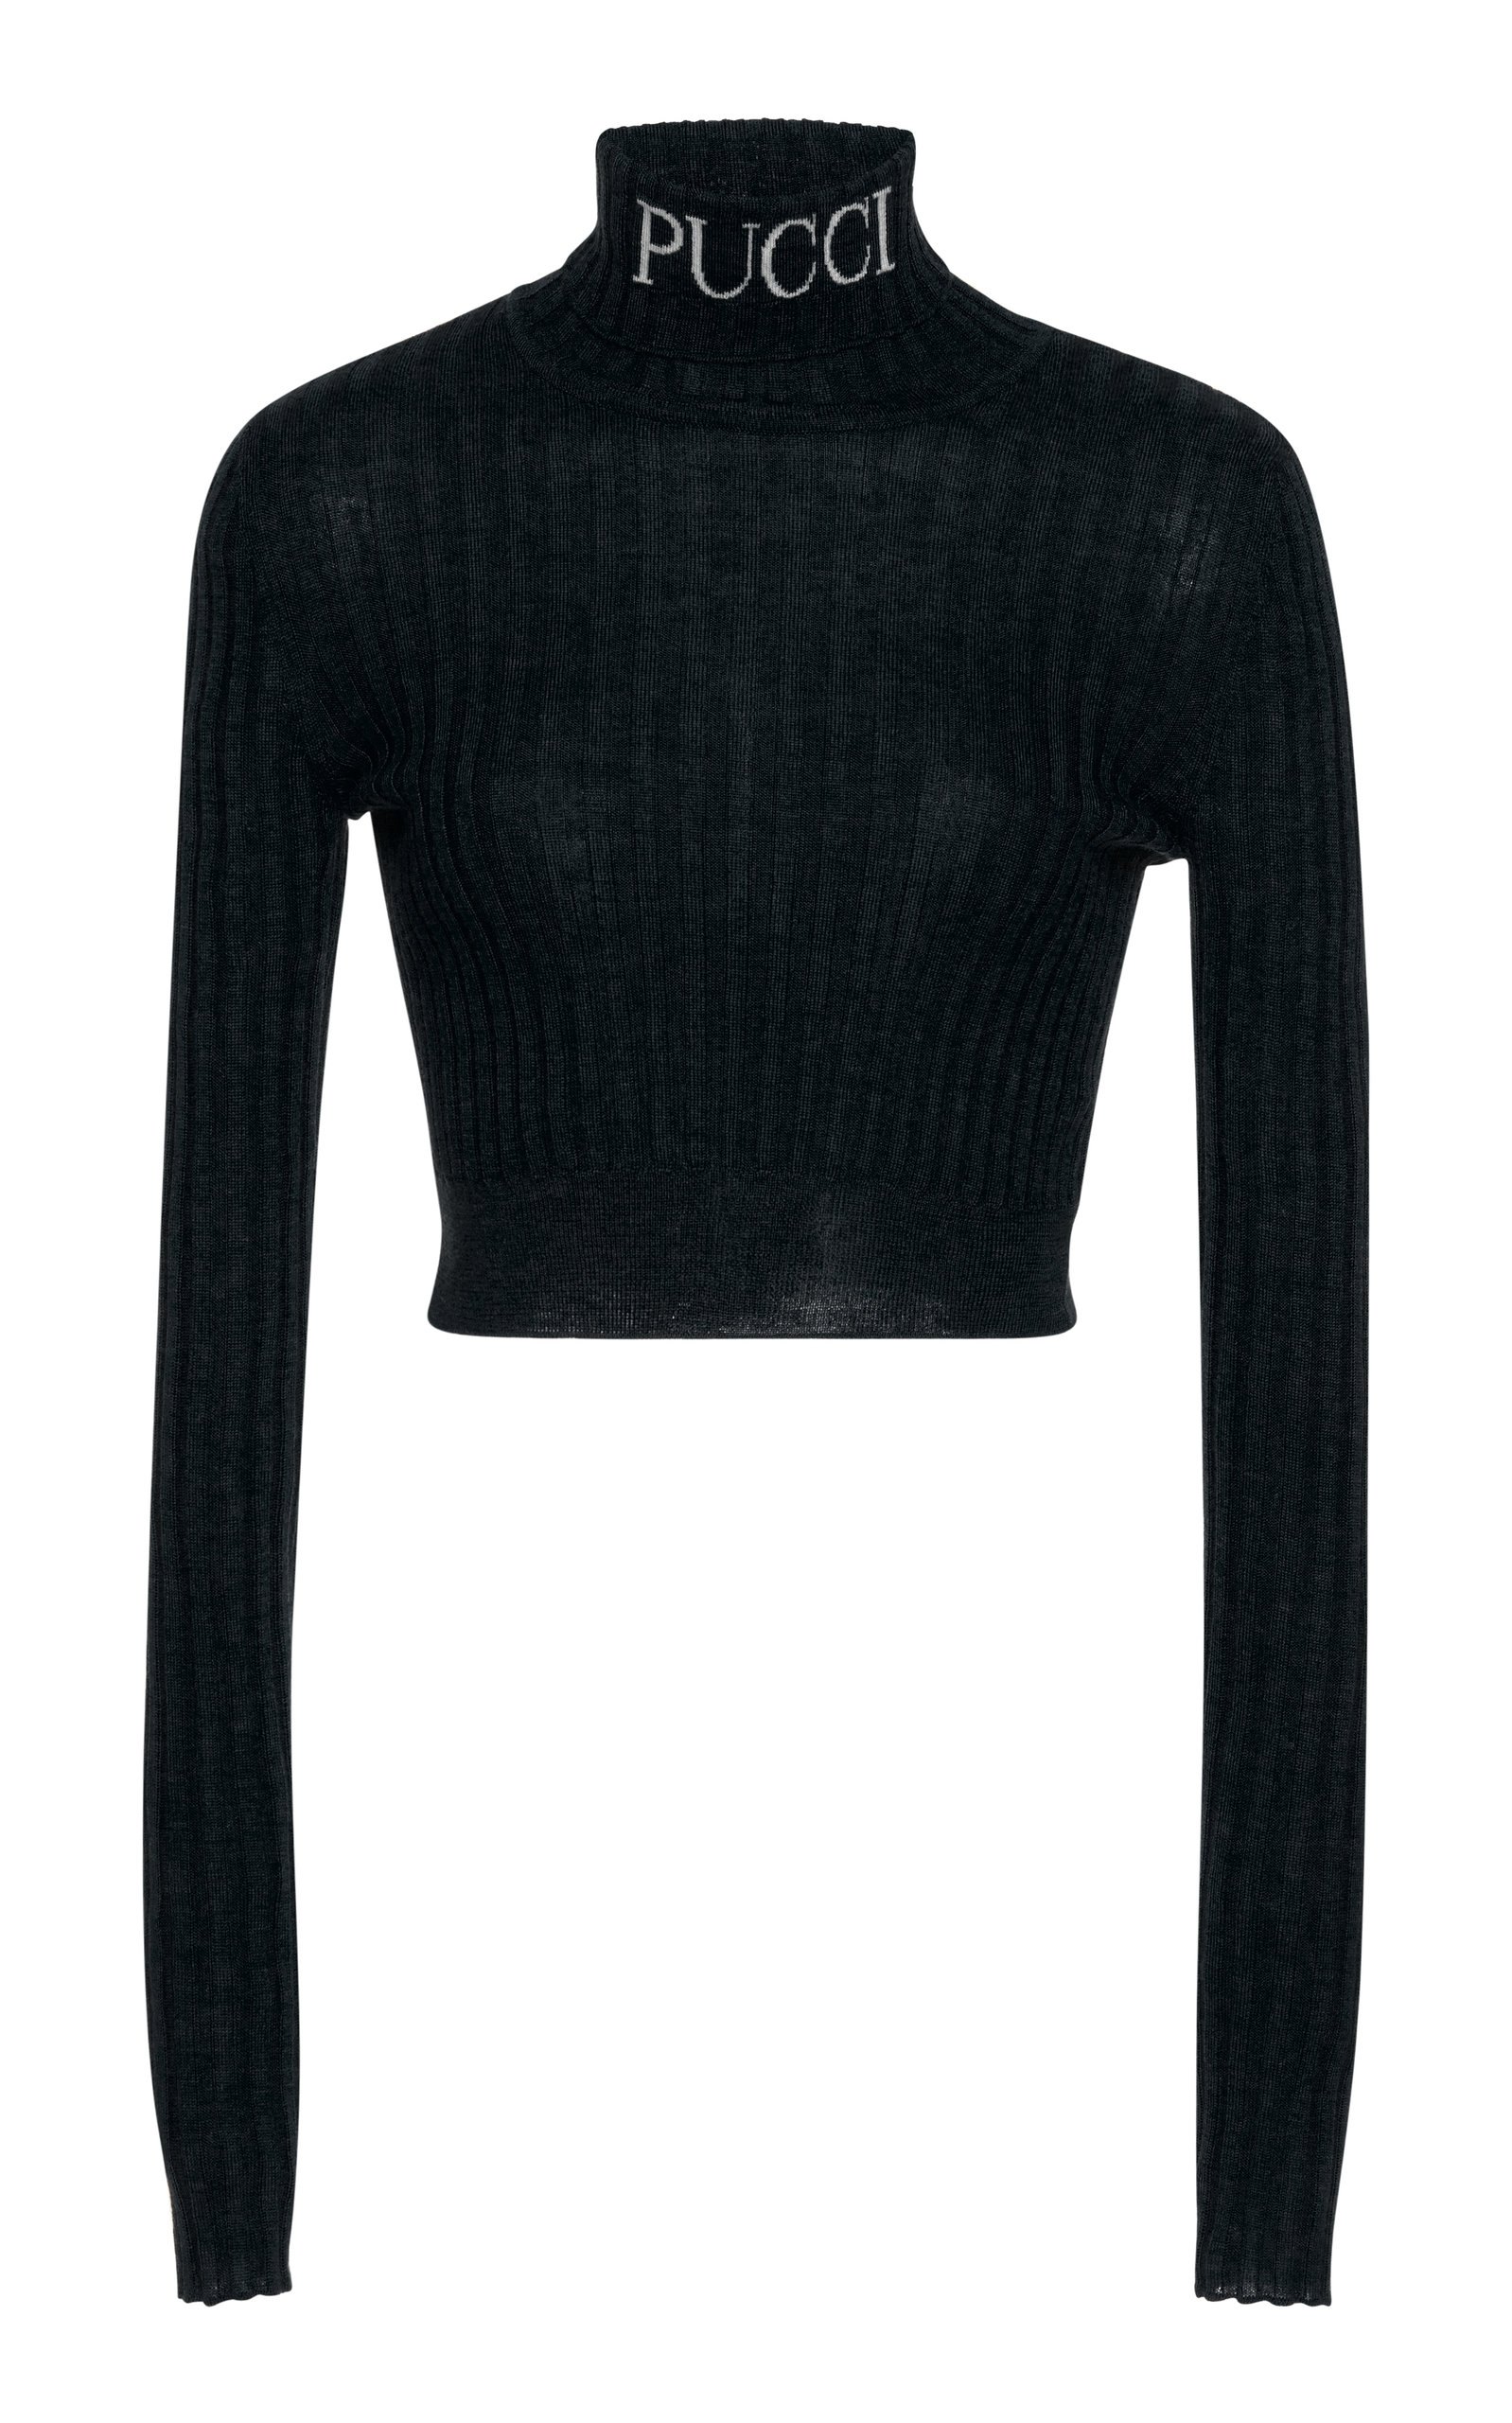 a28478111651 Cropped Turtleneck Pullover by Emilio Pucci